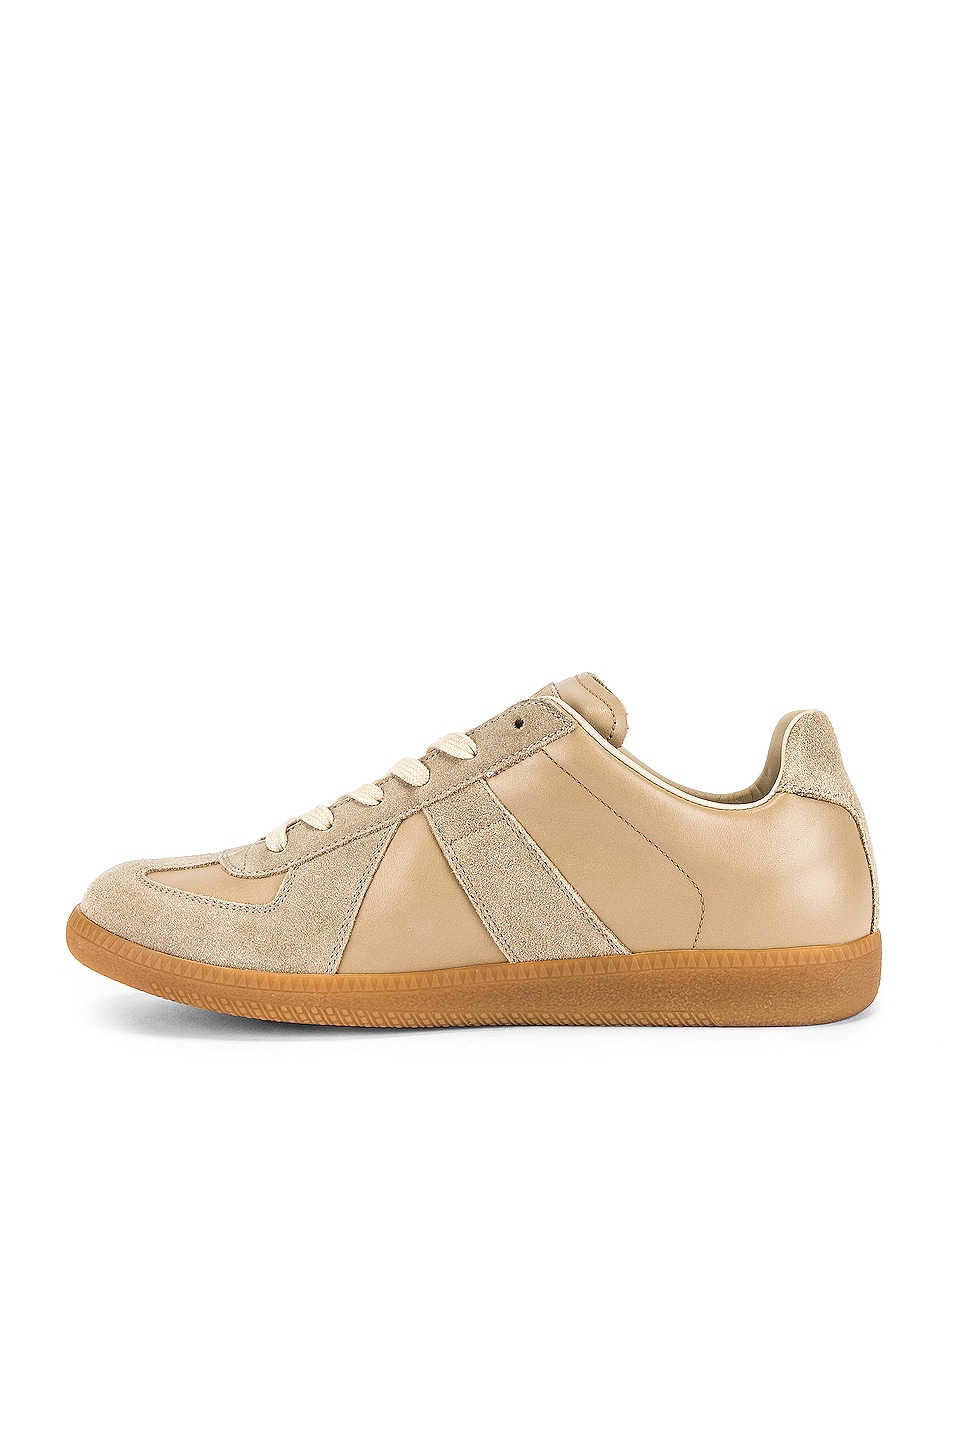 Image 5 of Maison Margiela Replica Low Top in Iced Coffee